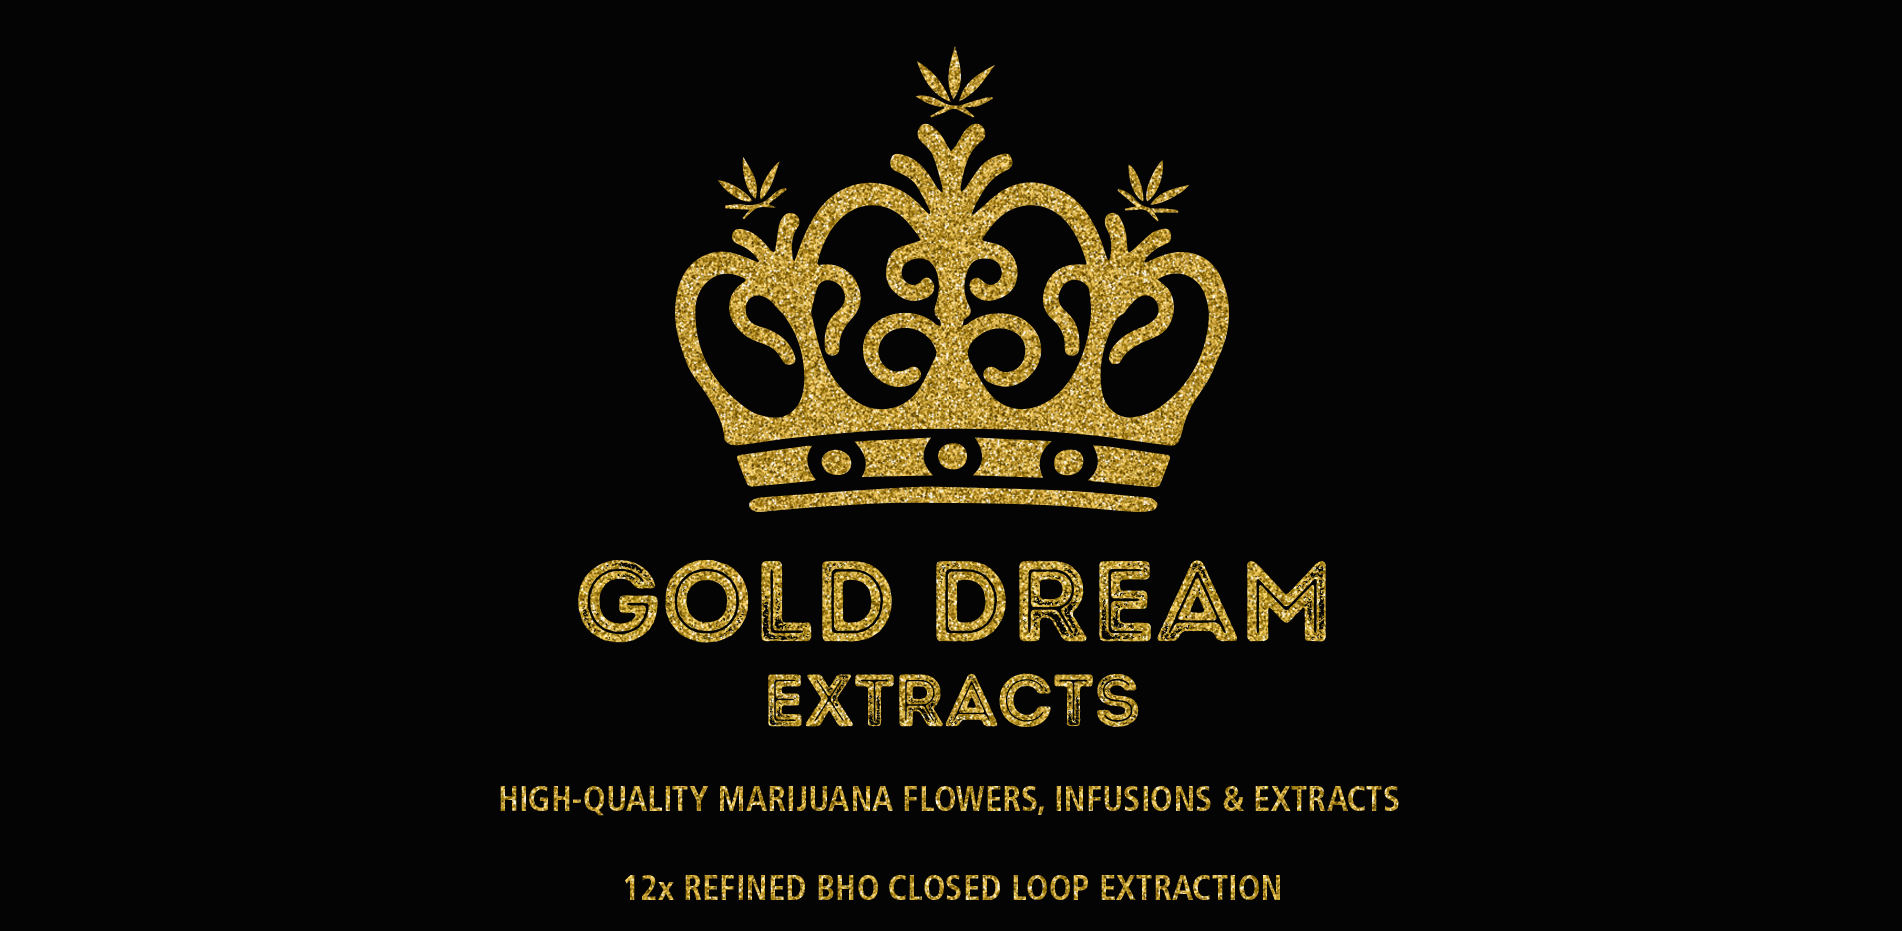 golddreams.ca